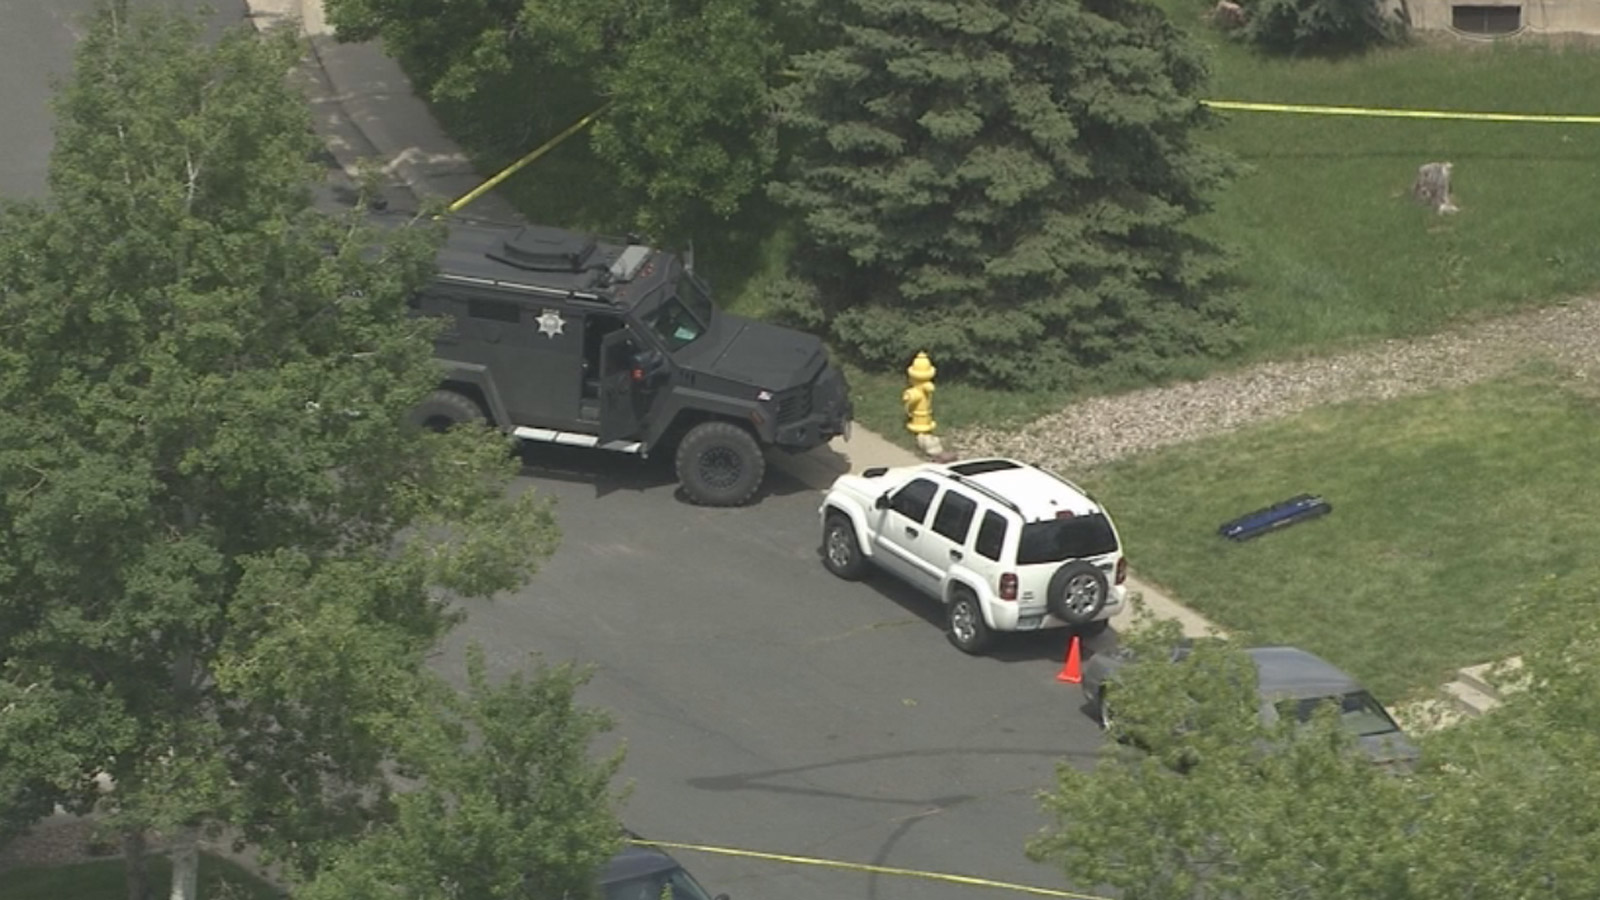 Copter4 flew over the home where the Northglenn Police officer was shot on Thursday (credit: CBS)